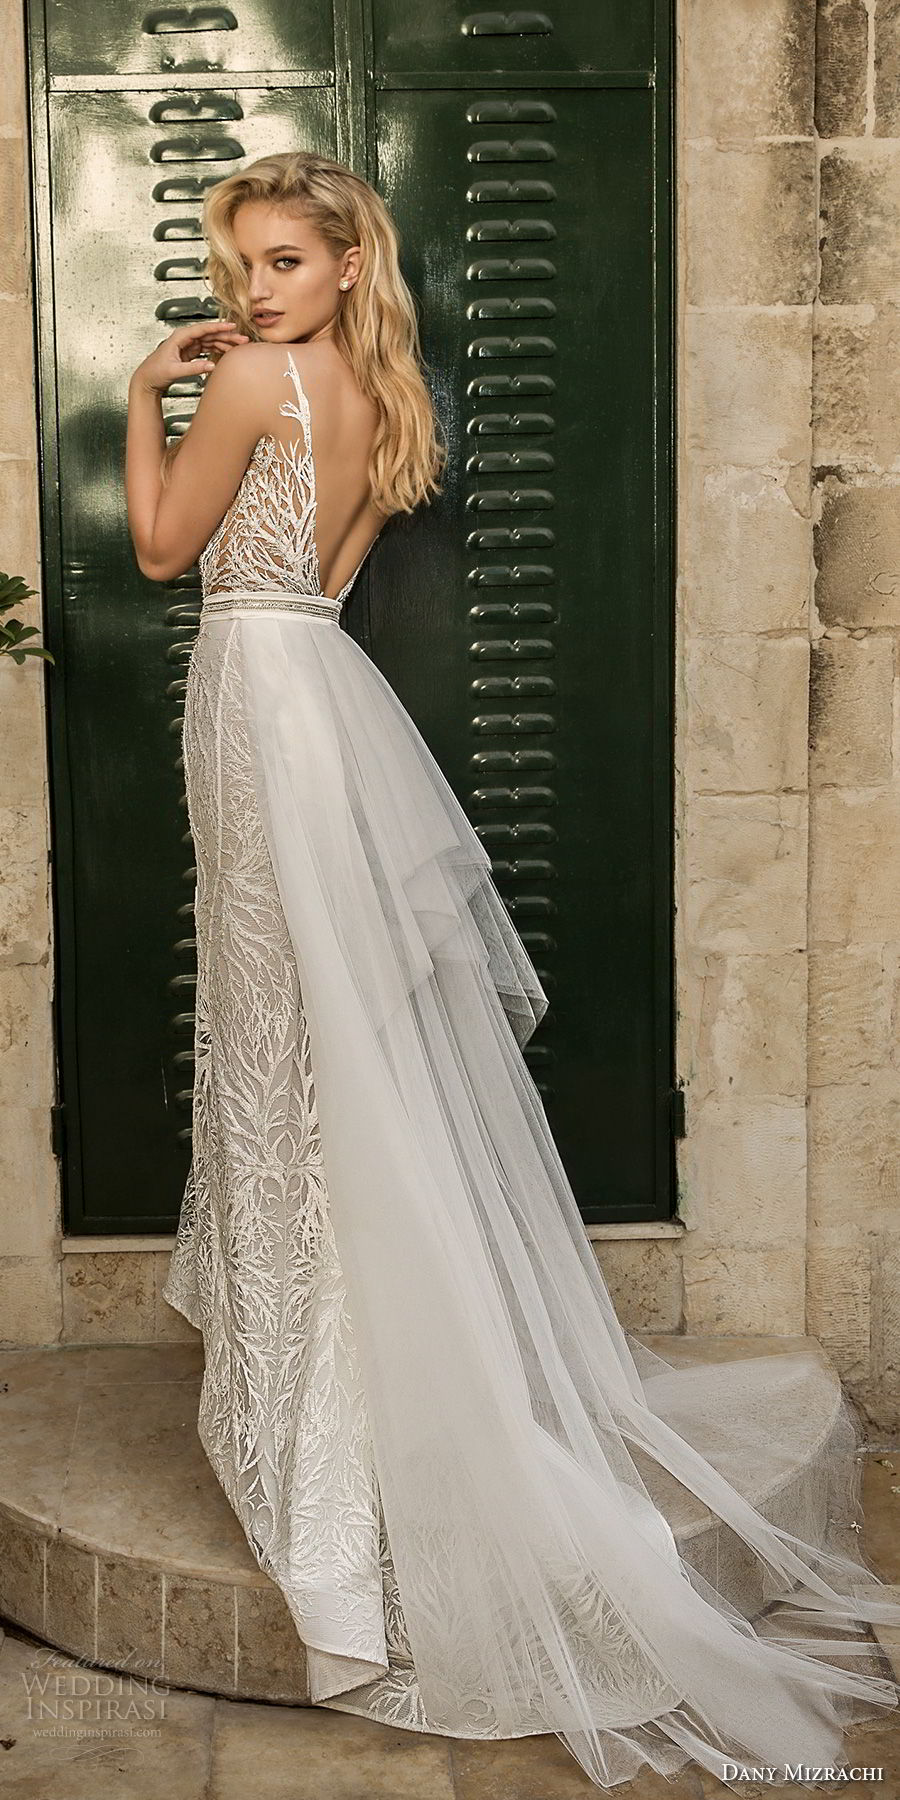 dany mizrachi spring 2018 bridal sleeveless deep plunging v neck full embellishment elegant glamorous fit and flare wedding dress open v back sweep train (23) bv